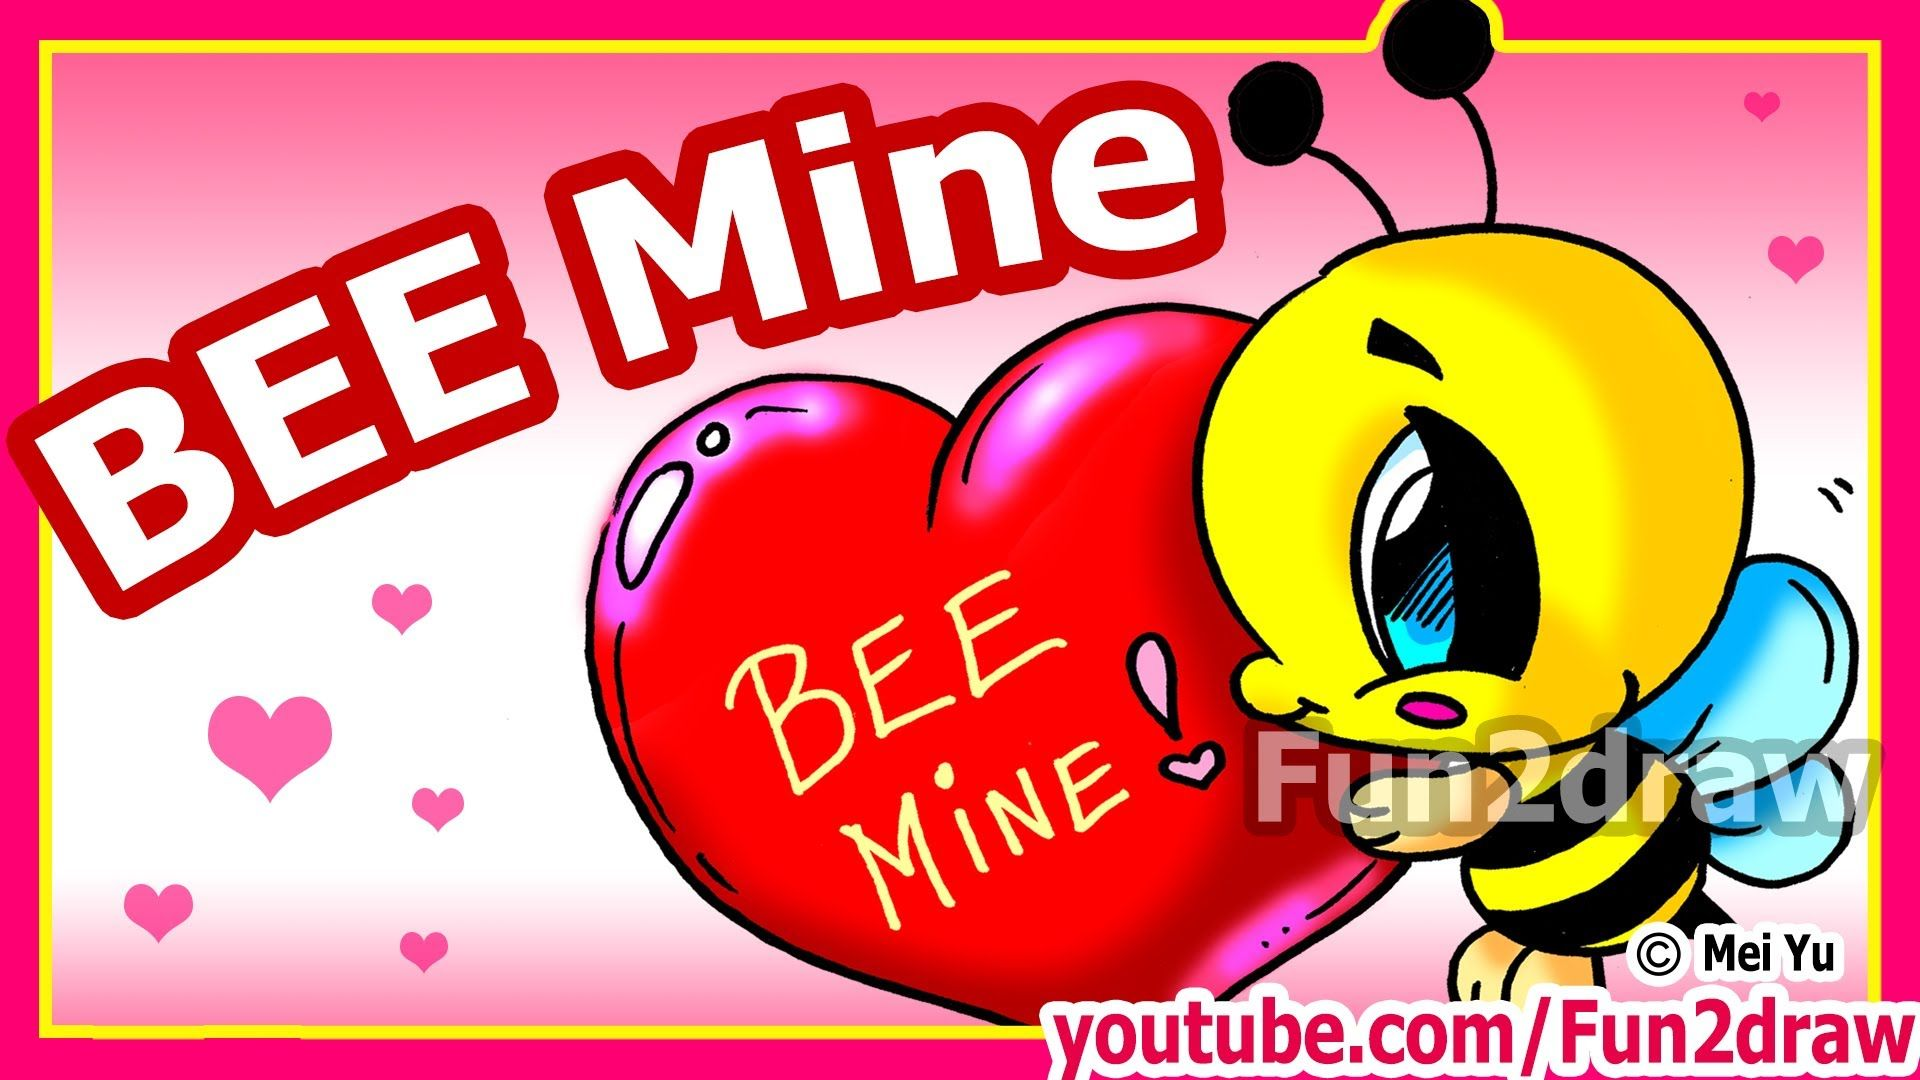 How To Draw Valentines Cute Cartoon Bee Heart Fun2draw Channel